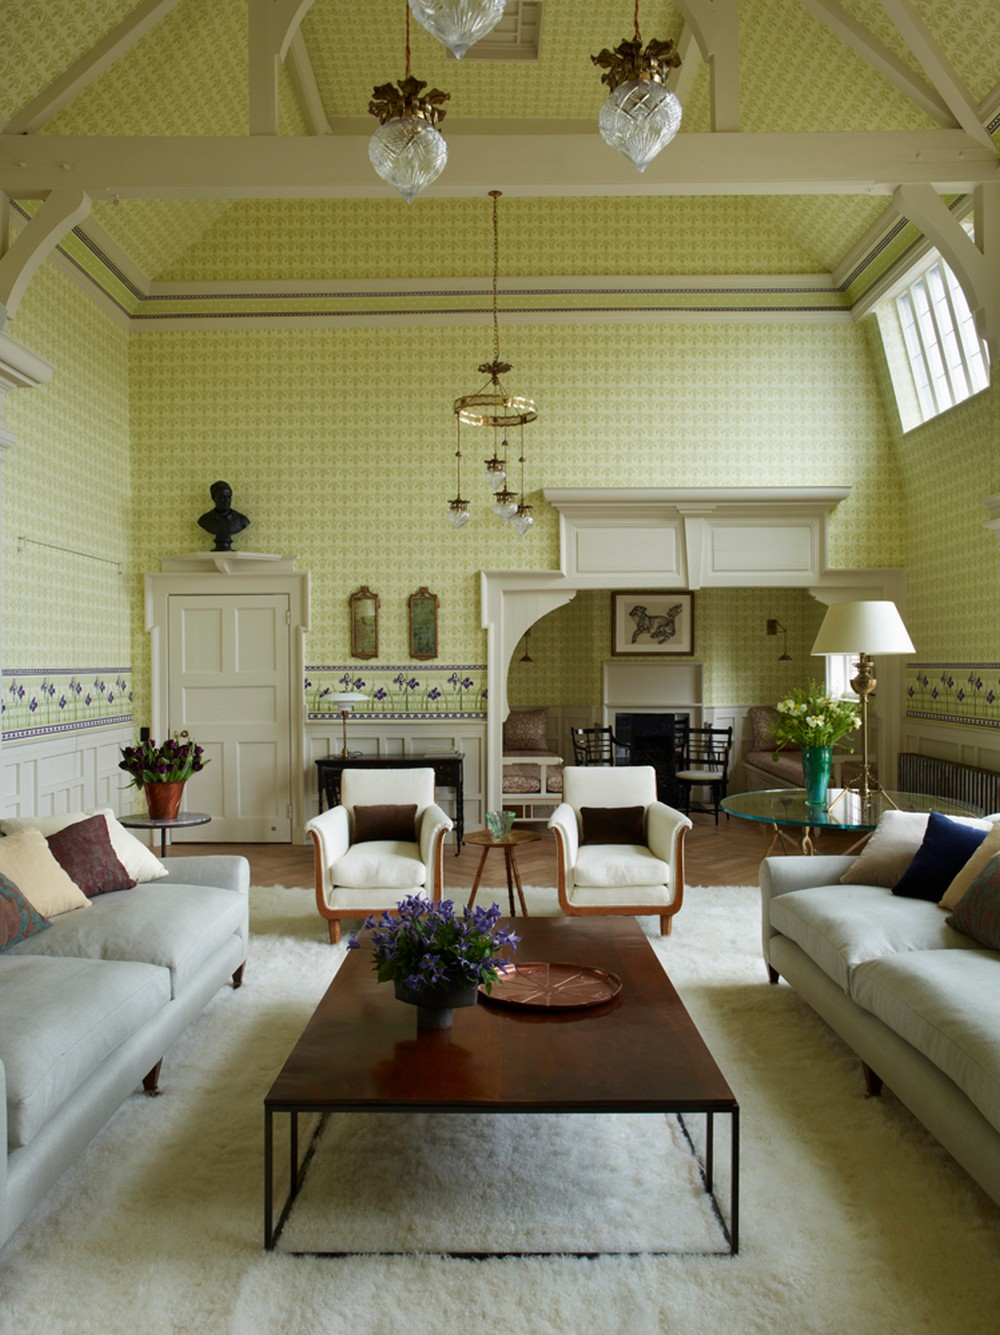 Rose Uniacke Is One Of The Biggest Design Influencers In The